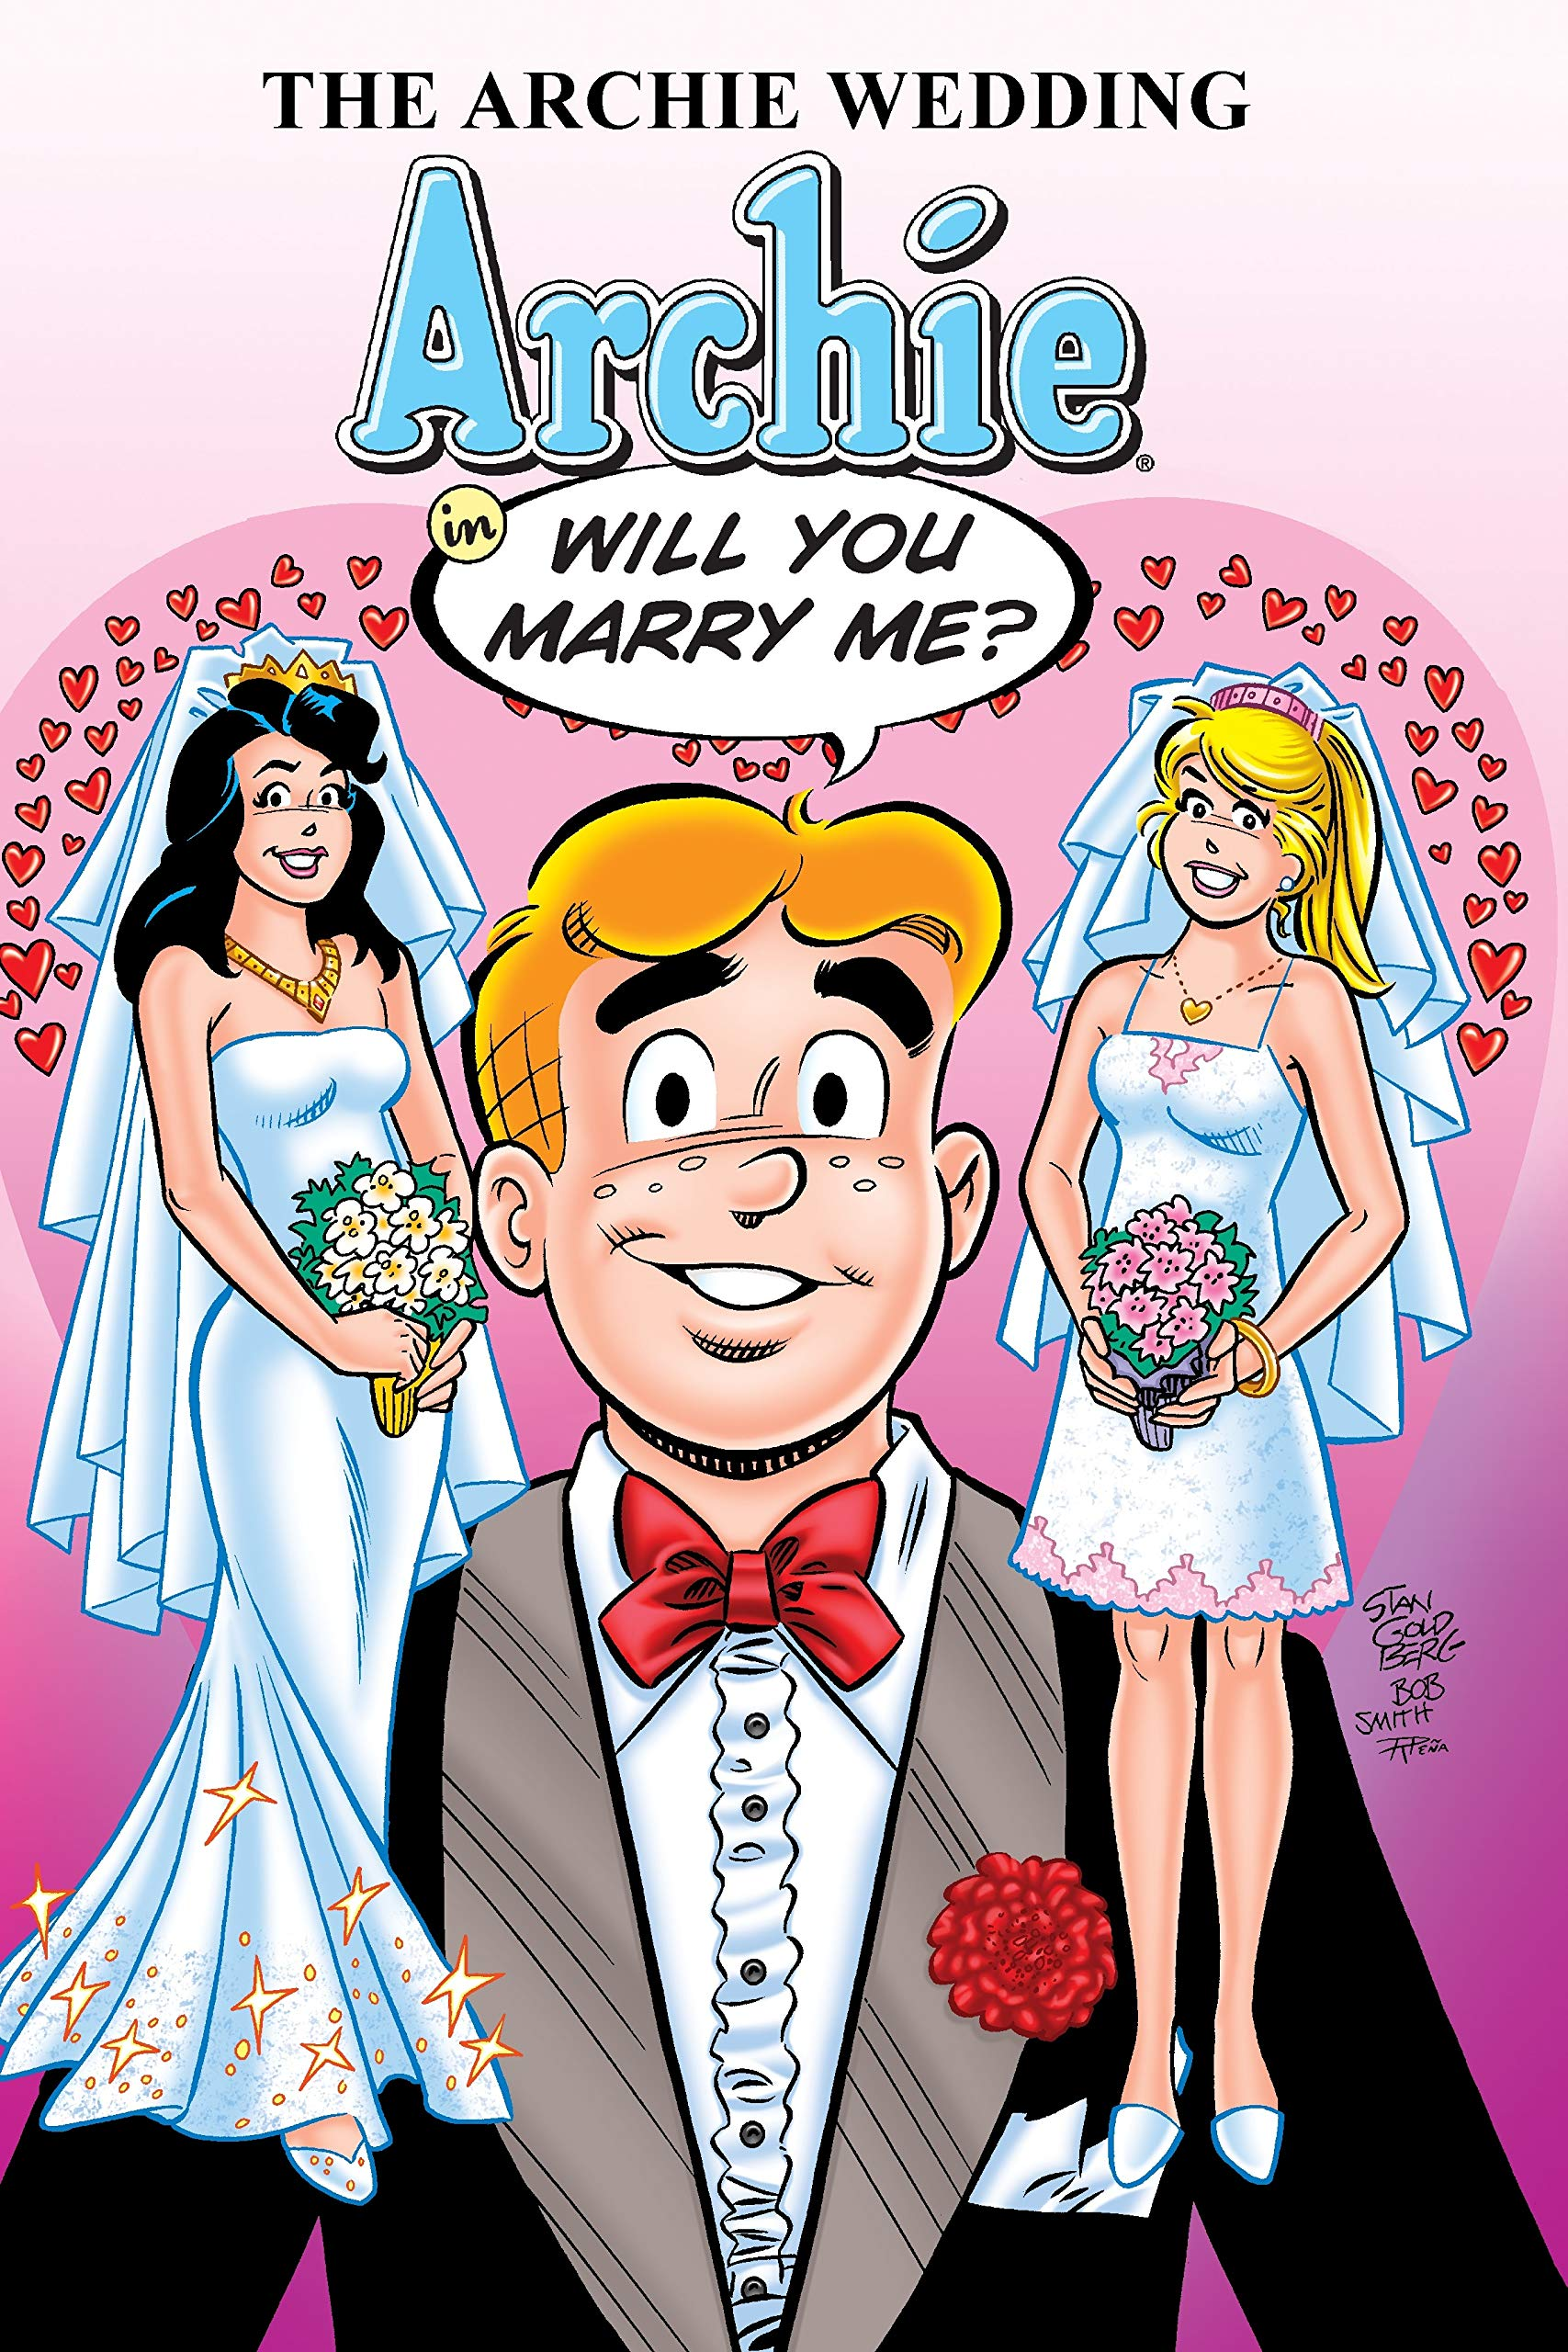 The Archie Wedding: Archie in Will You Marry Me? The Married Life Series: Amazon.in: Uslan, Michael, Goldberg, Stan: Books